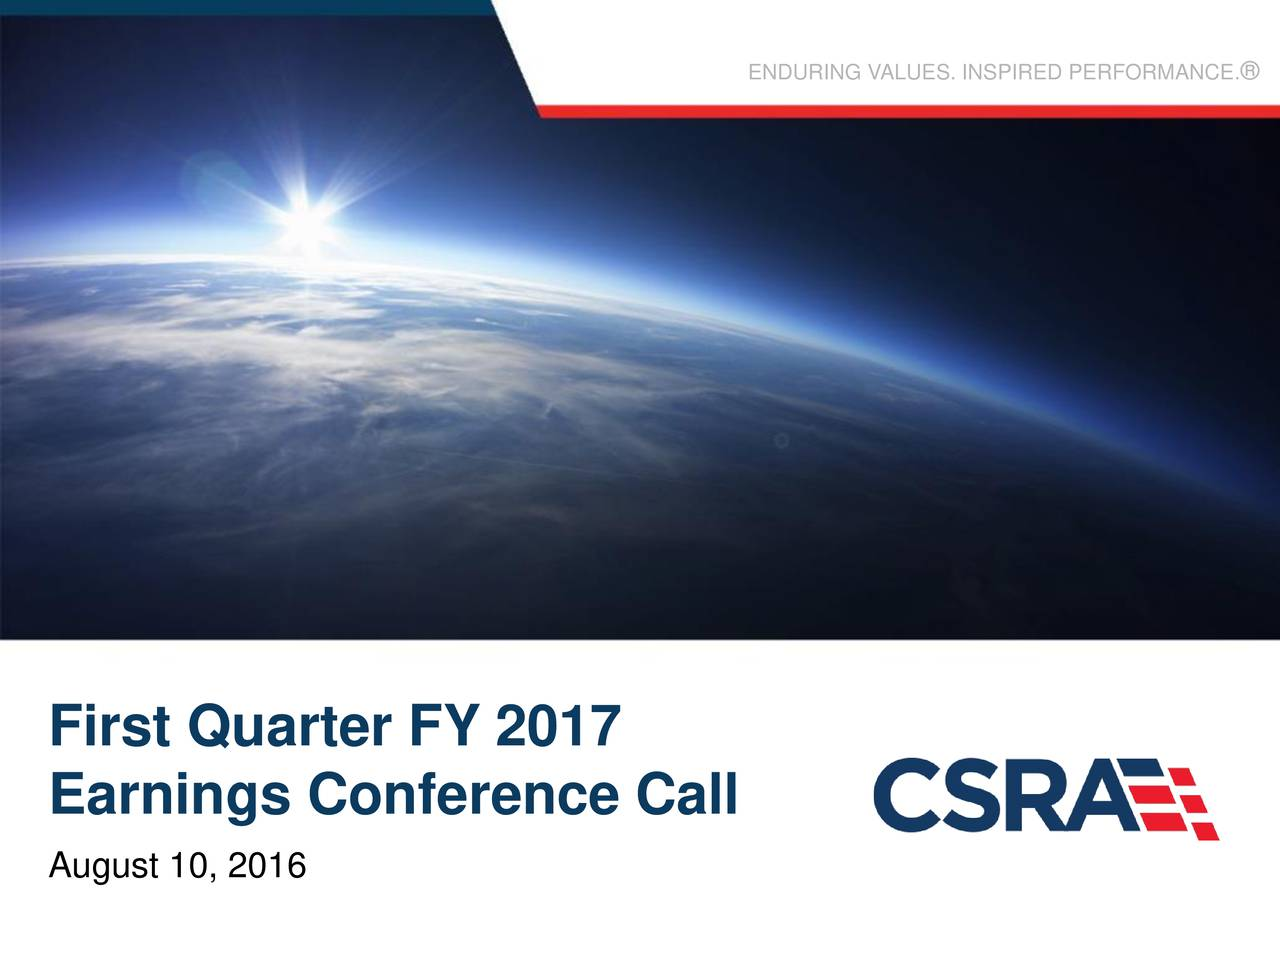 First Quarter FY 2017 Earnings Conference Call August 10, 2016